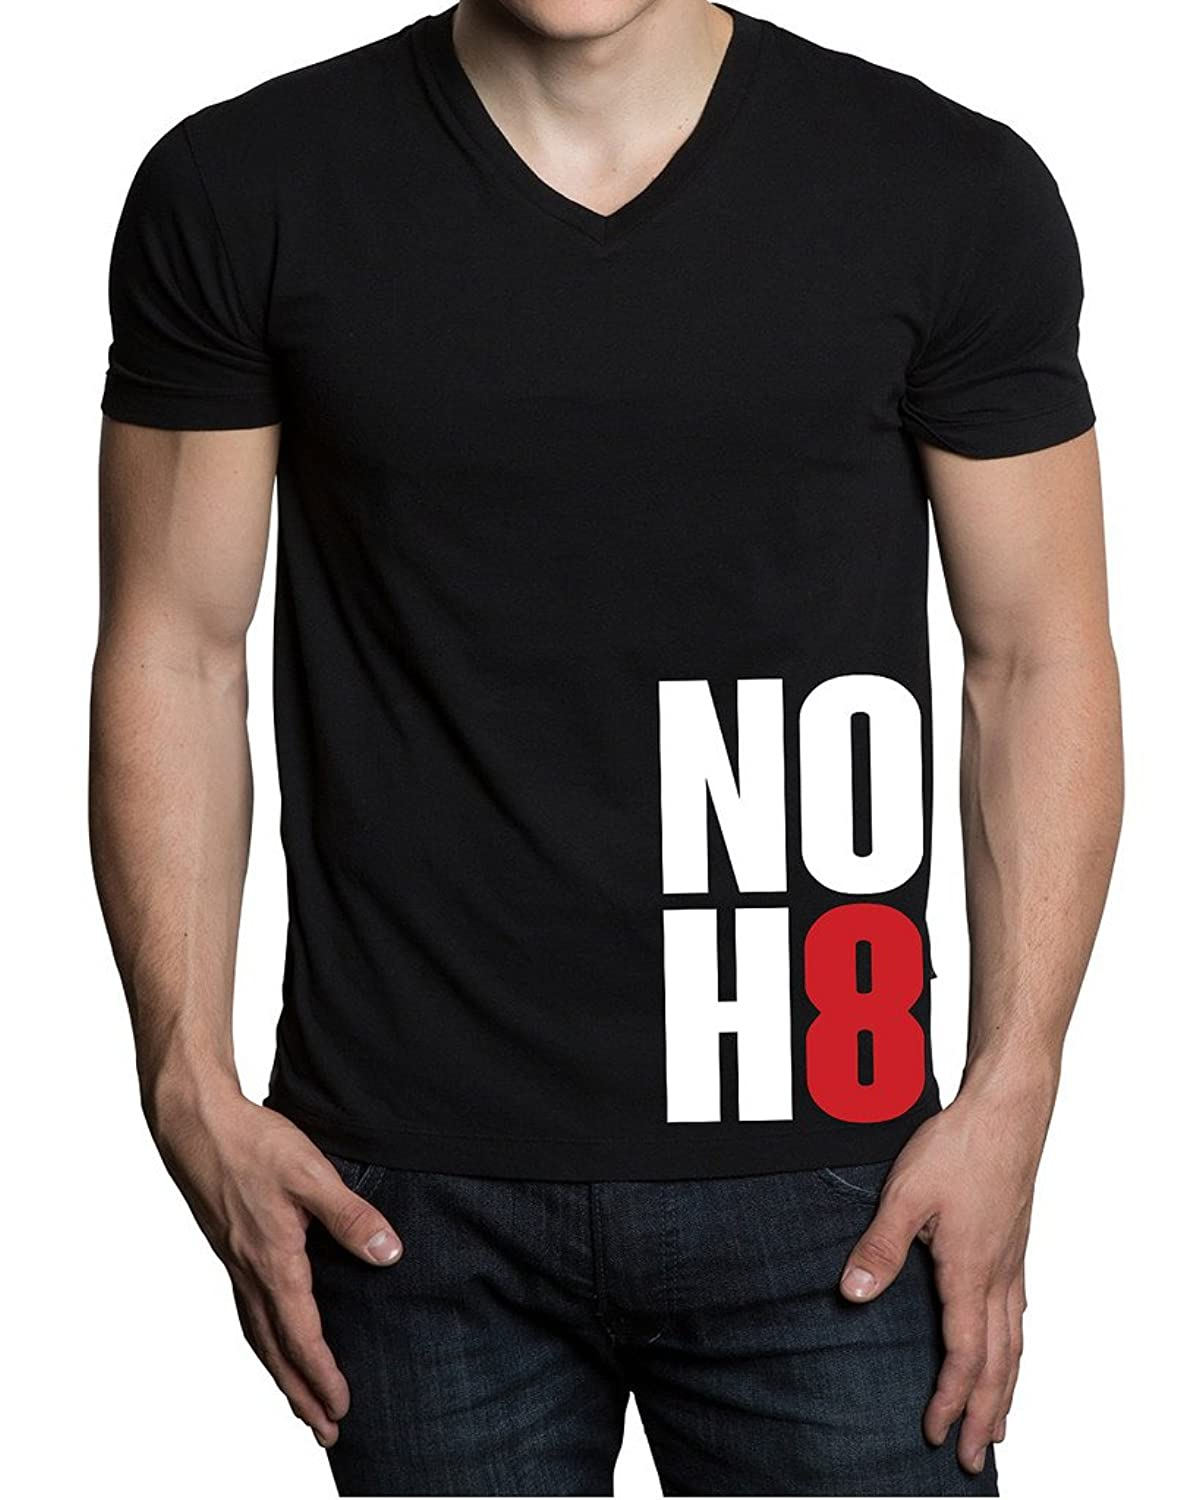 No H8 No Hate Men's Black V-Neck T-Shirt V238 Black